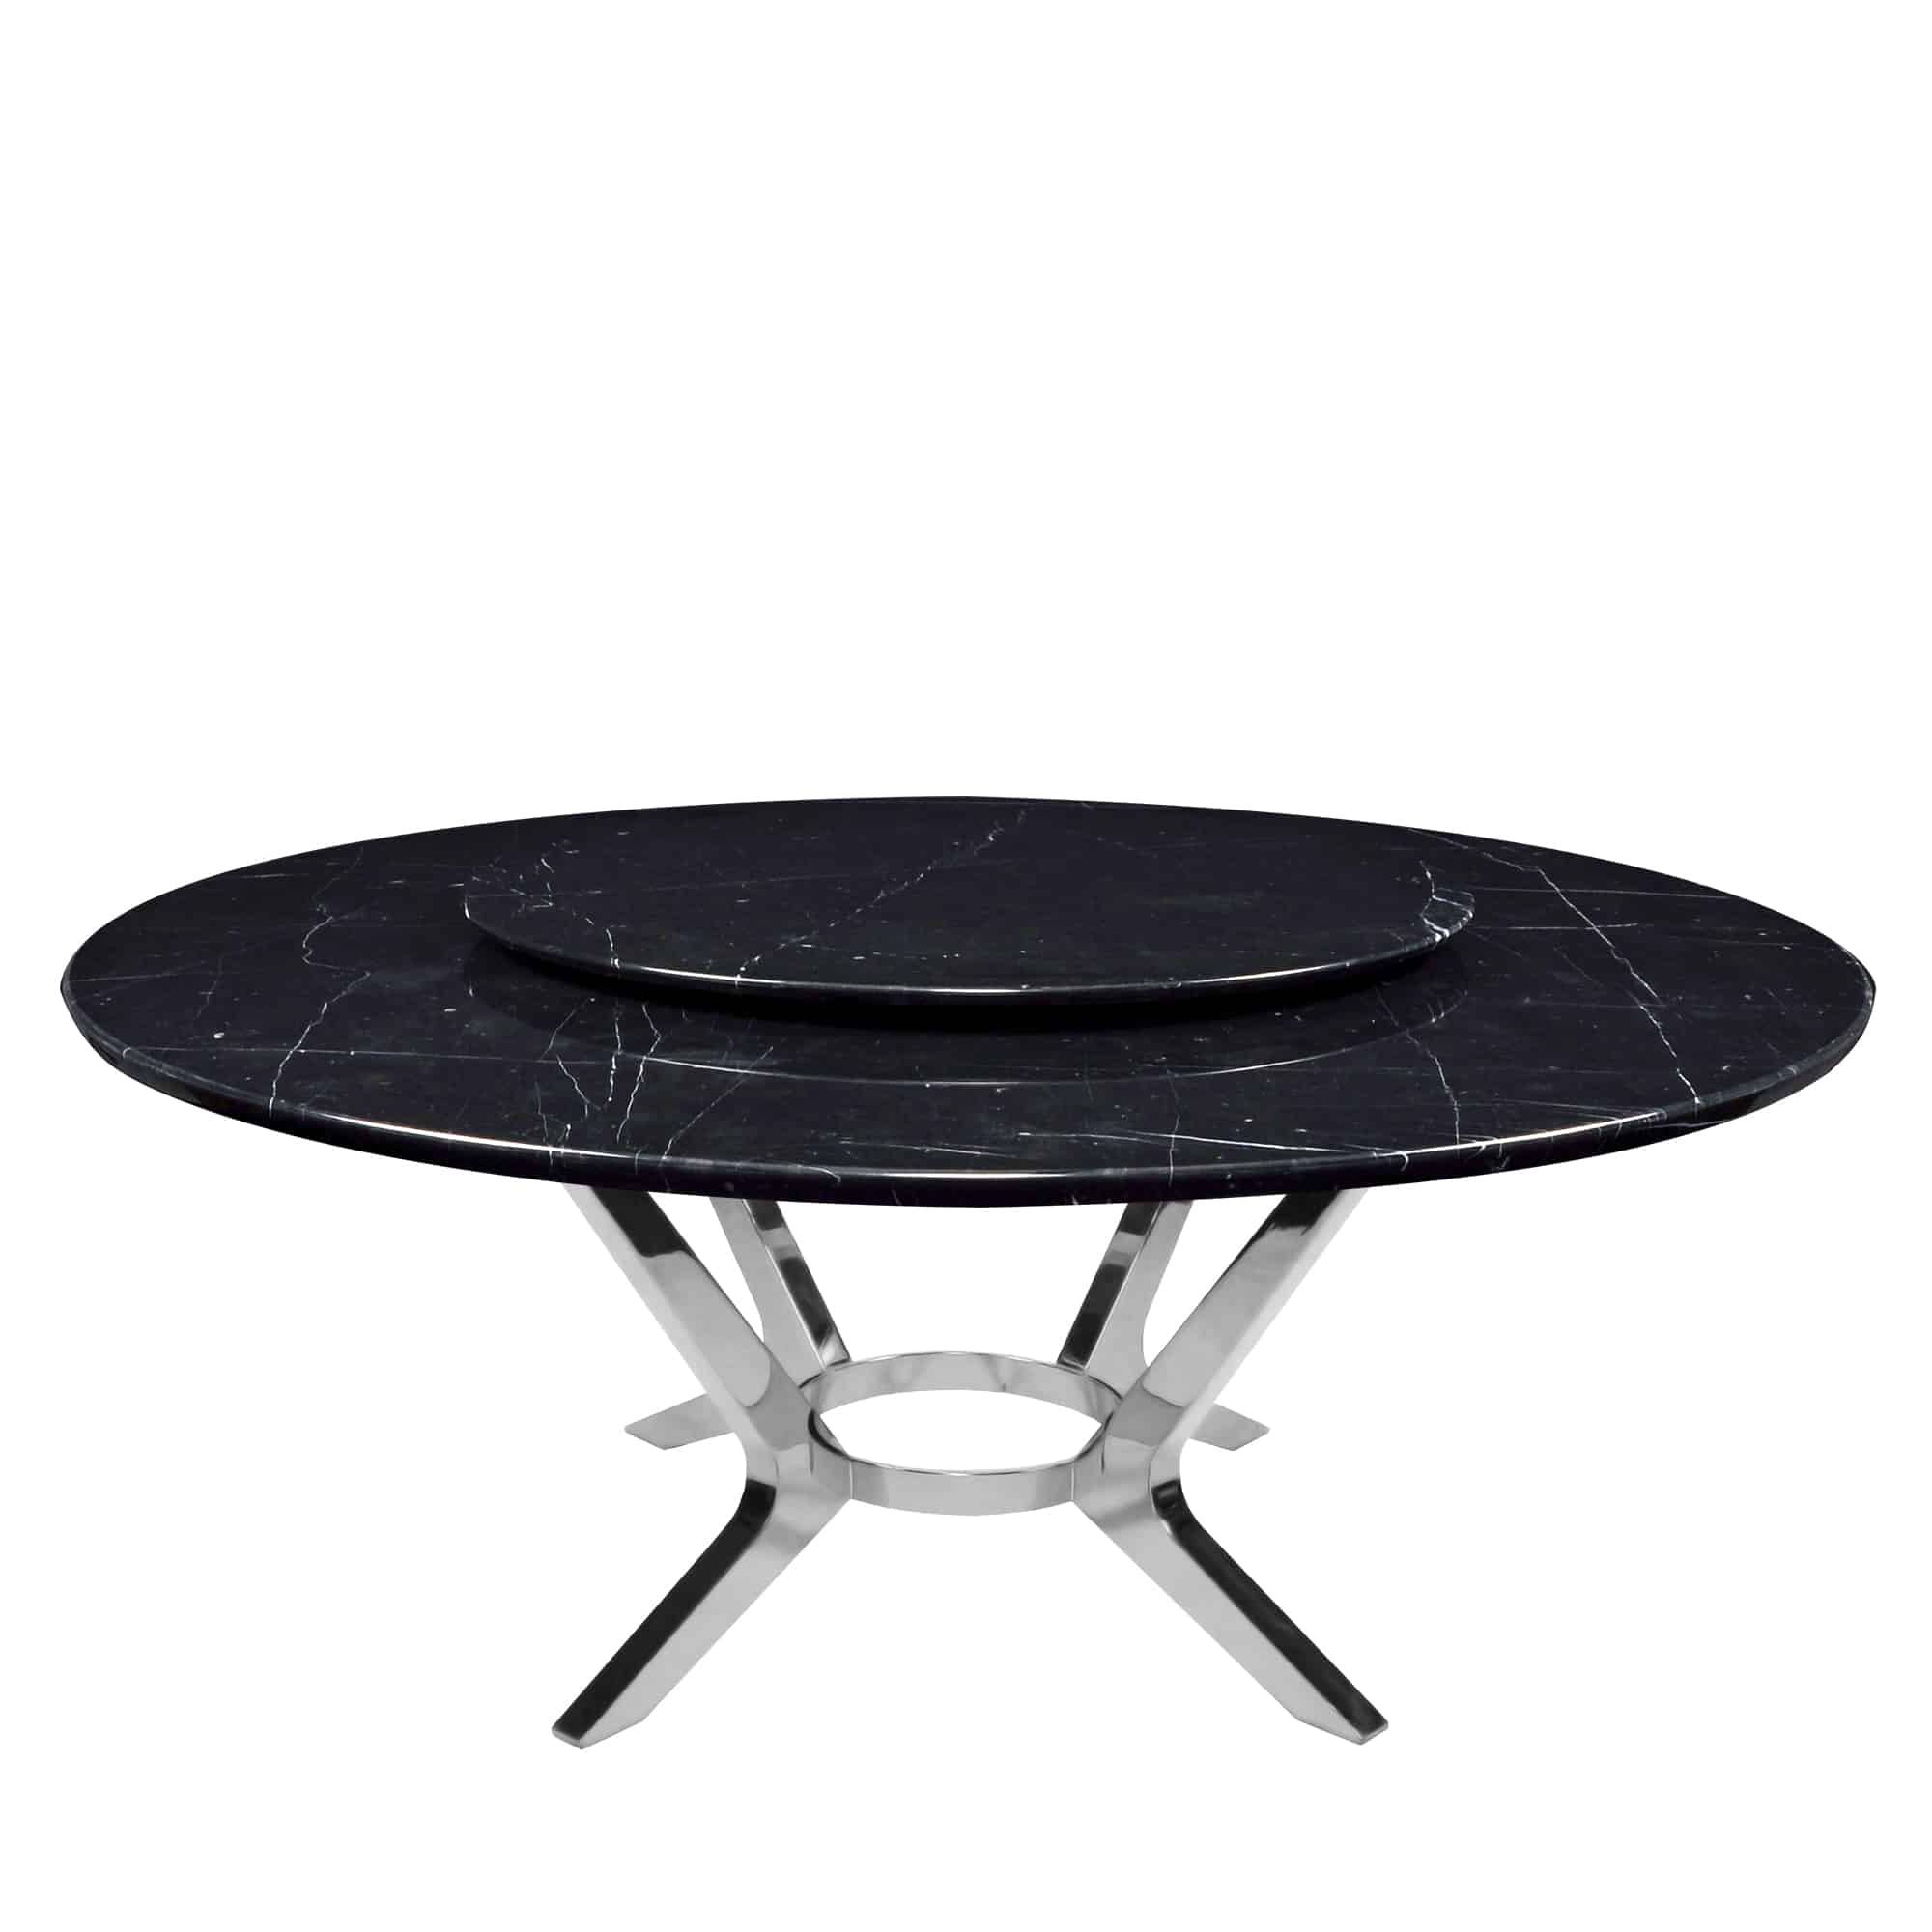 Decasa Round Marble Dining Table Black Marquina